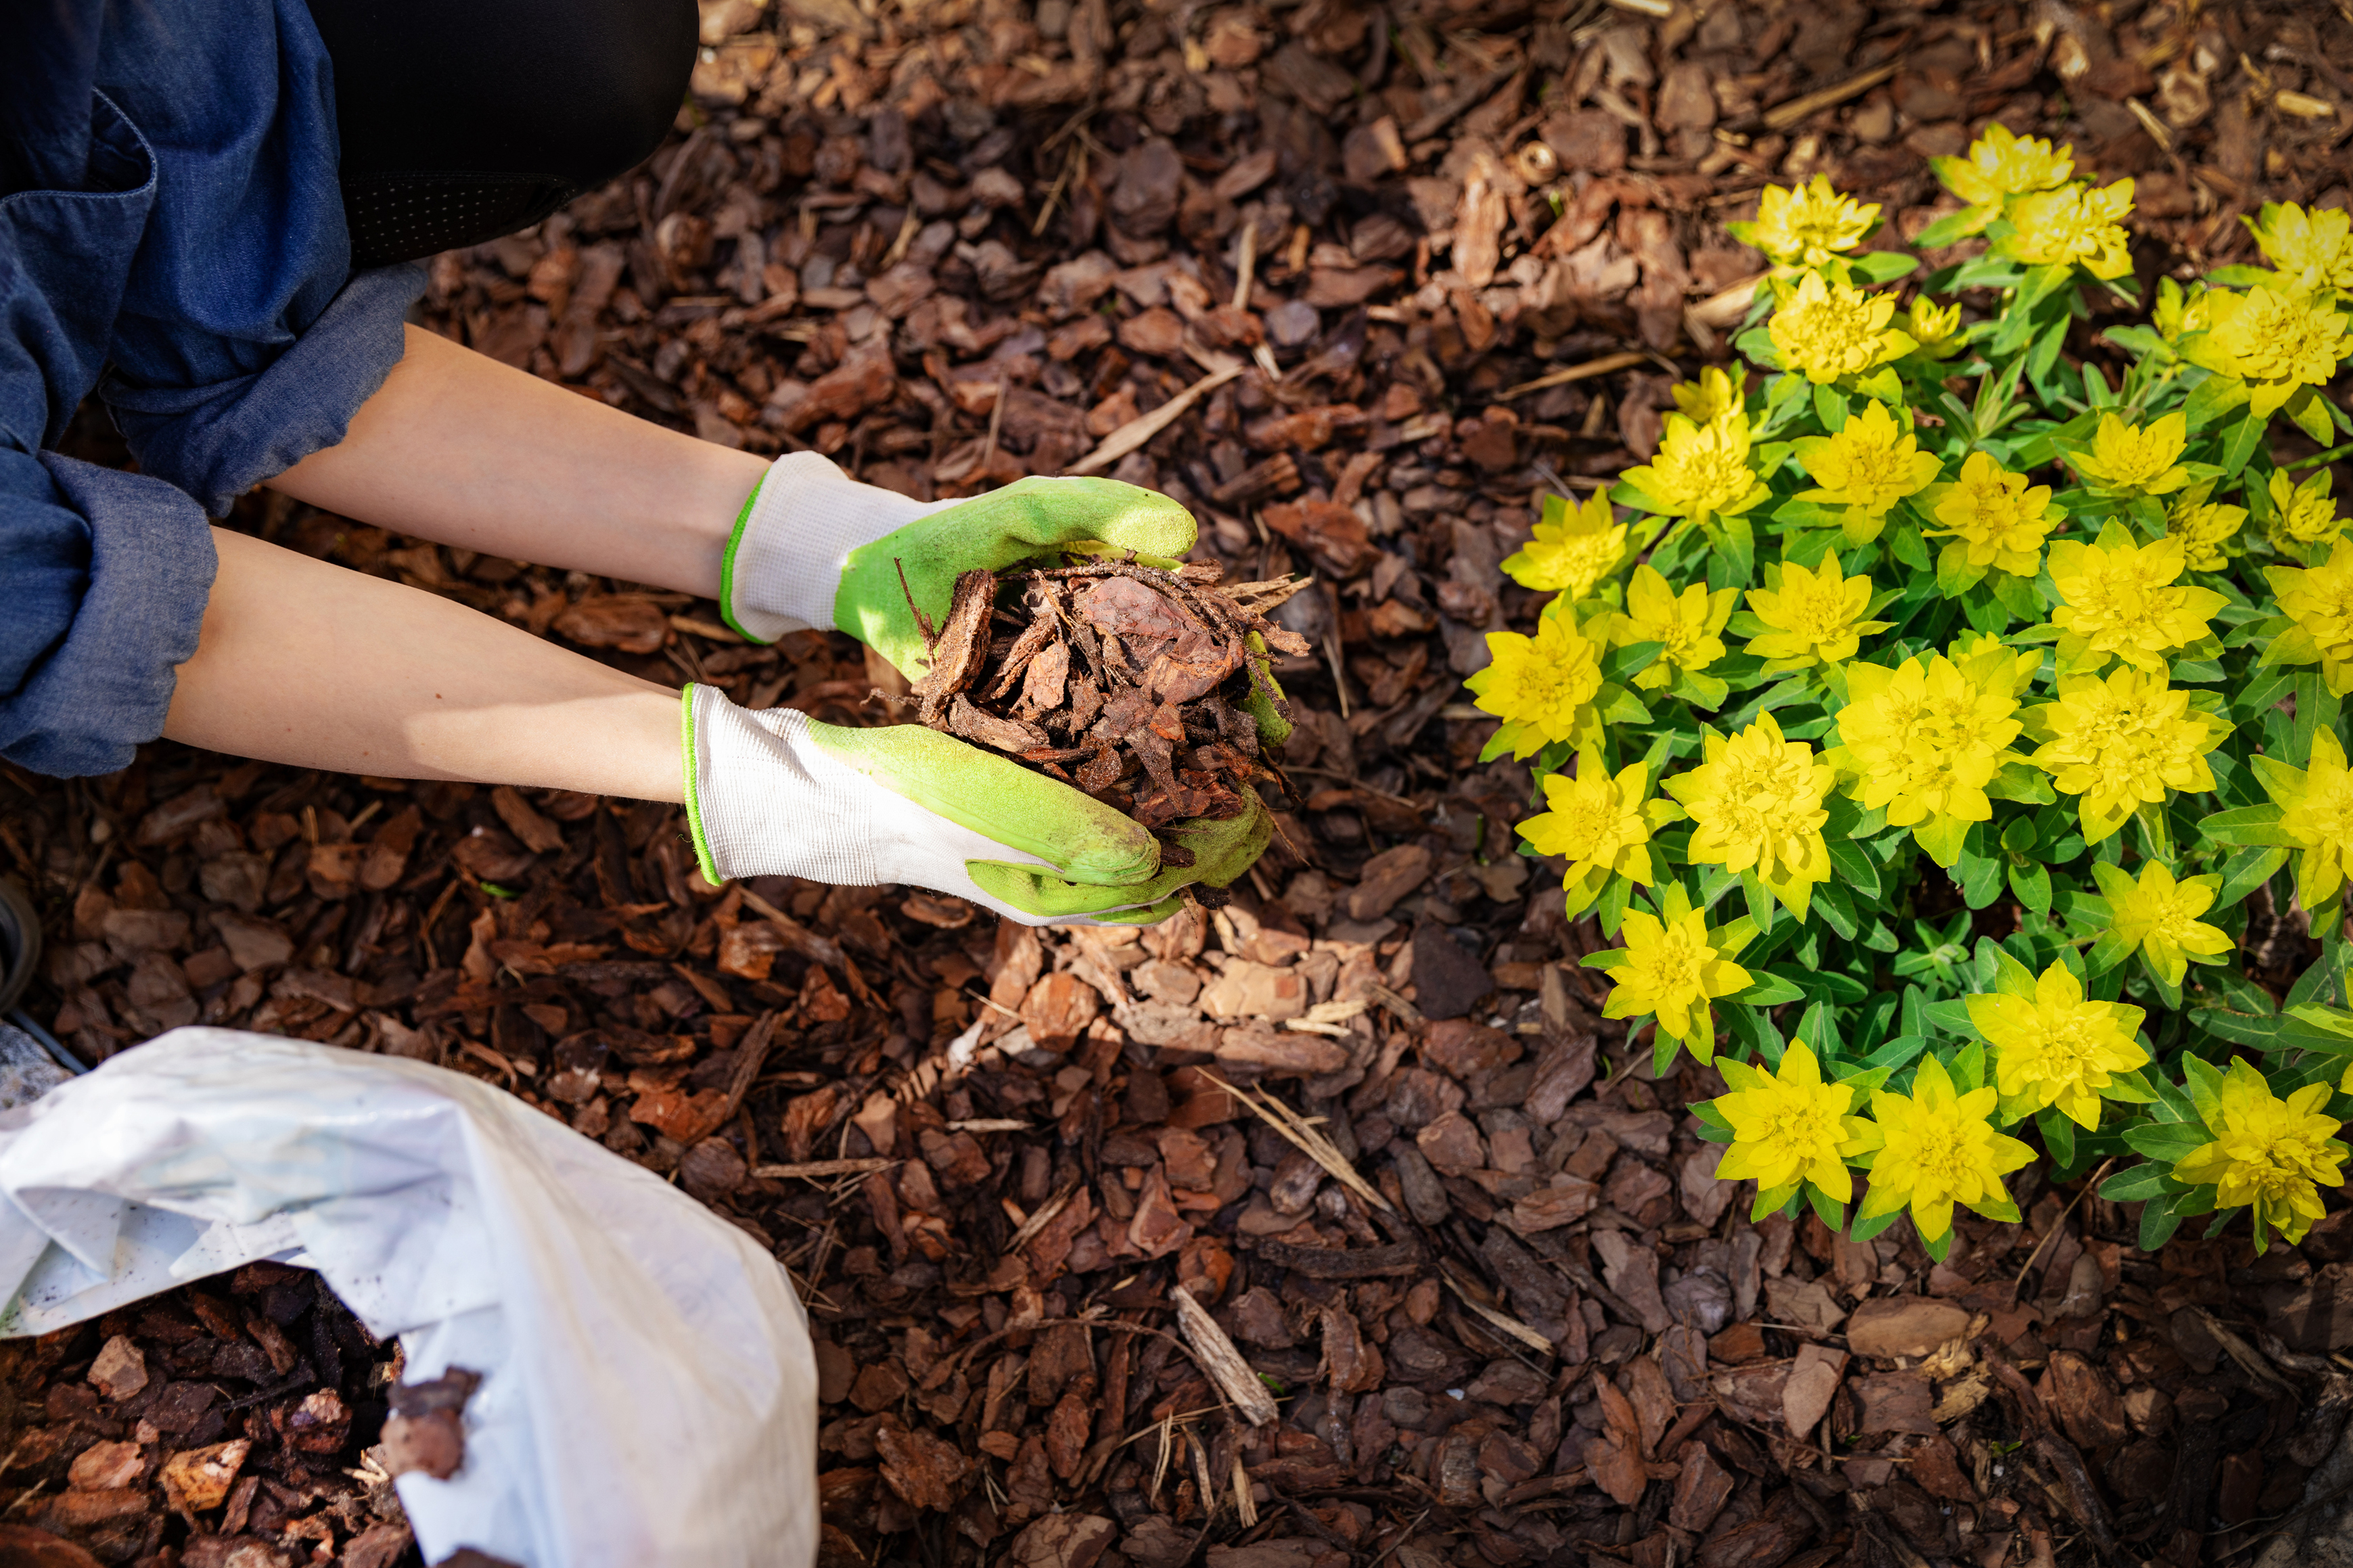 Spreading mulch to suppress weeds (iStock/PA)